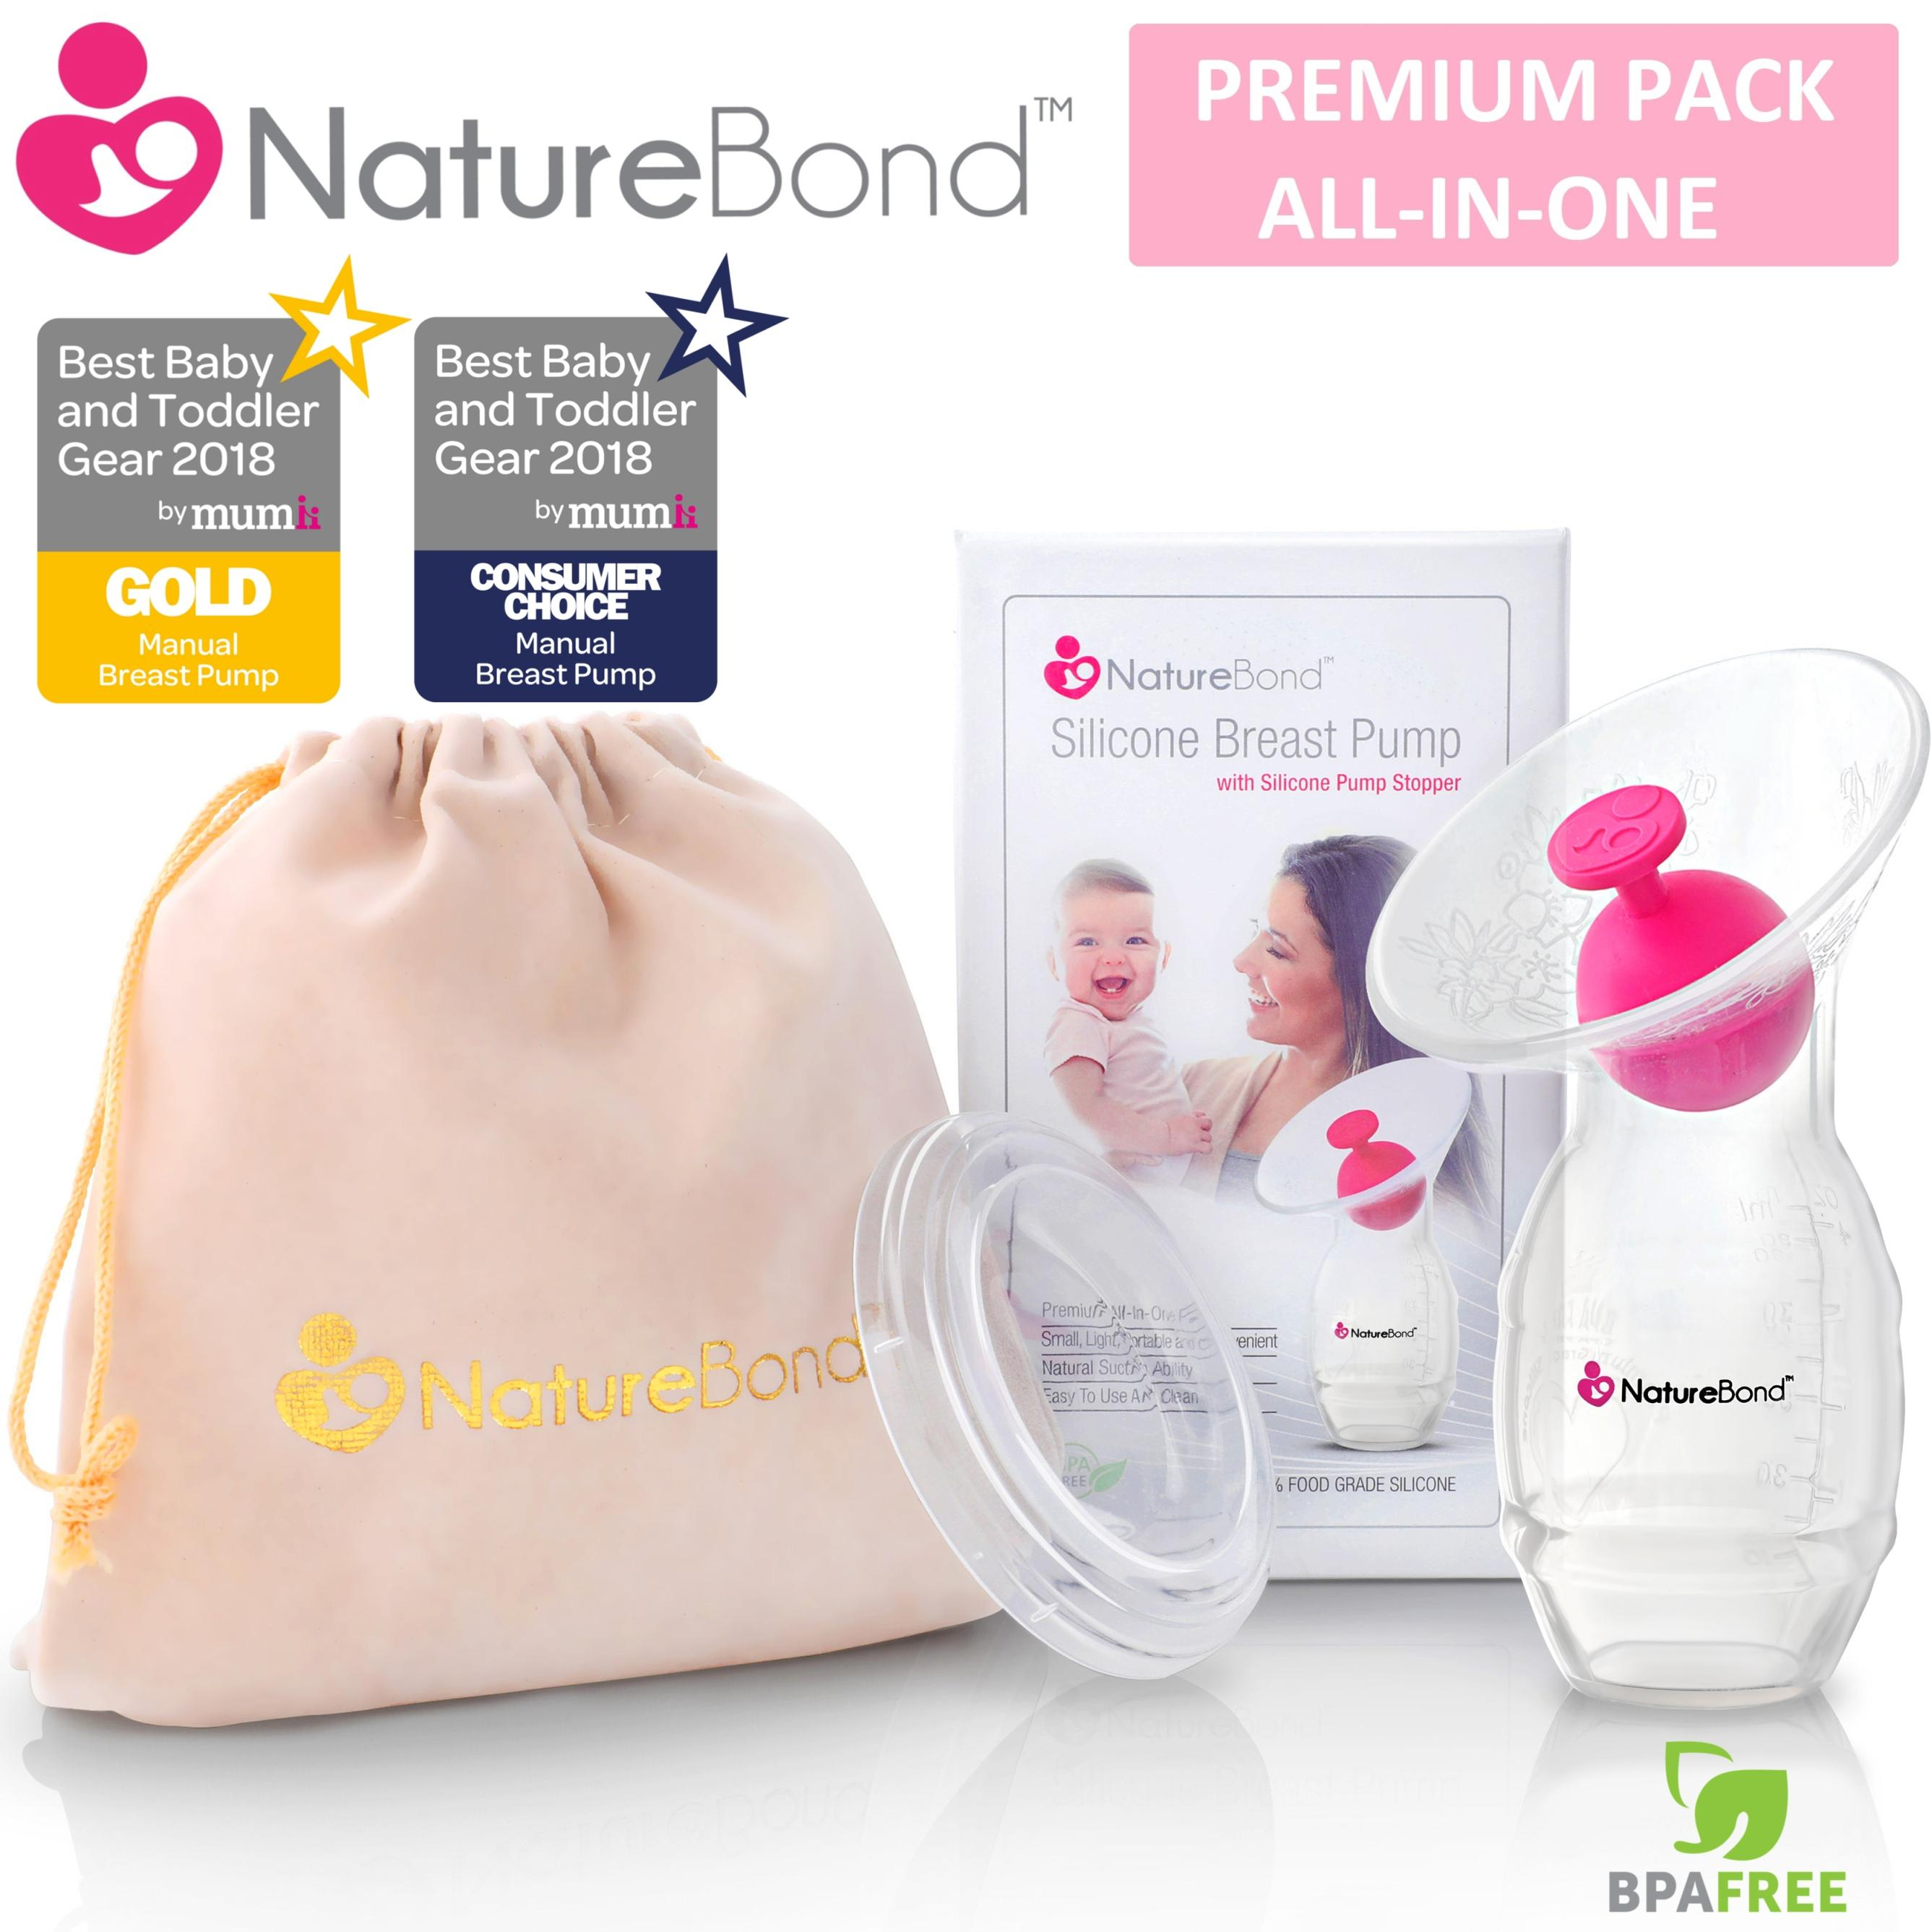 Naturebond Silicone Breast Pump With Silicone Stopper Premium Pack ★hot Sale★ By Naturebond.